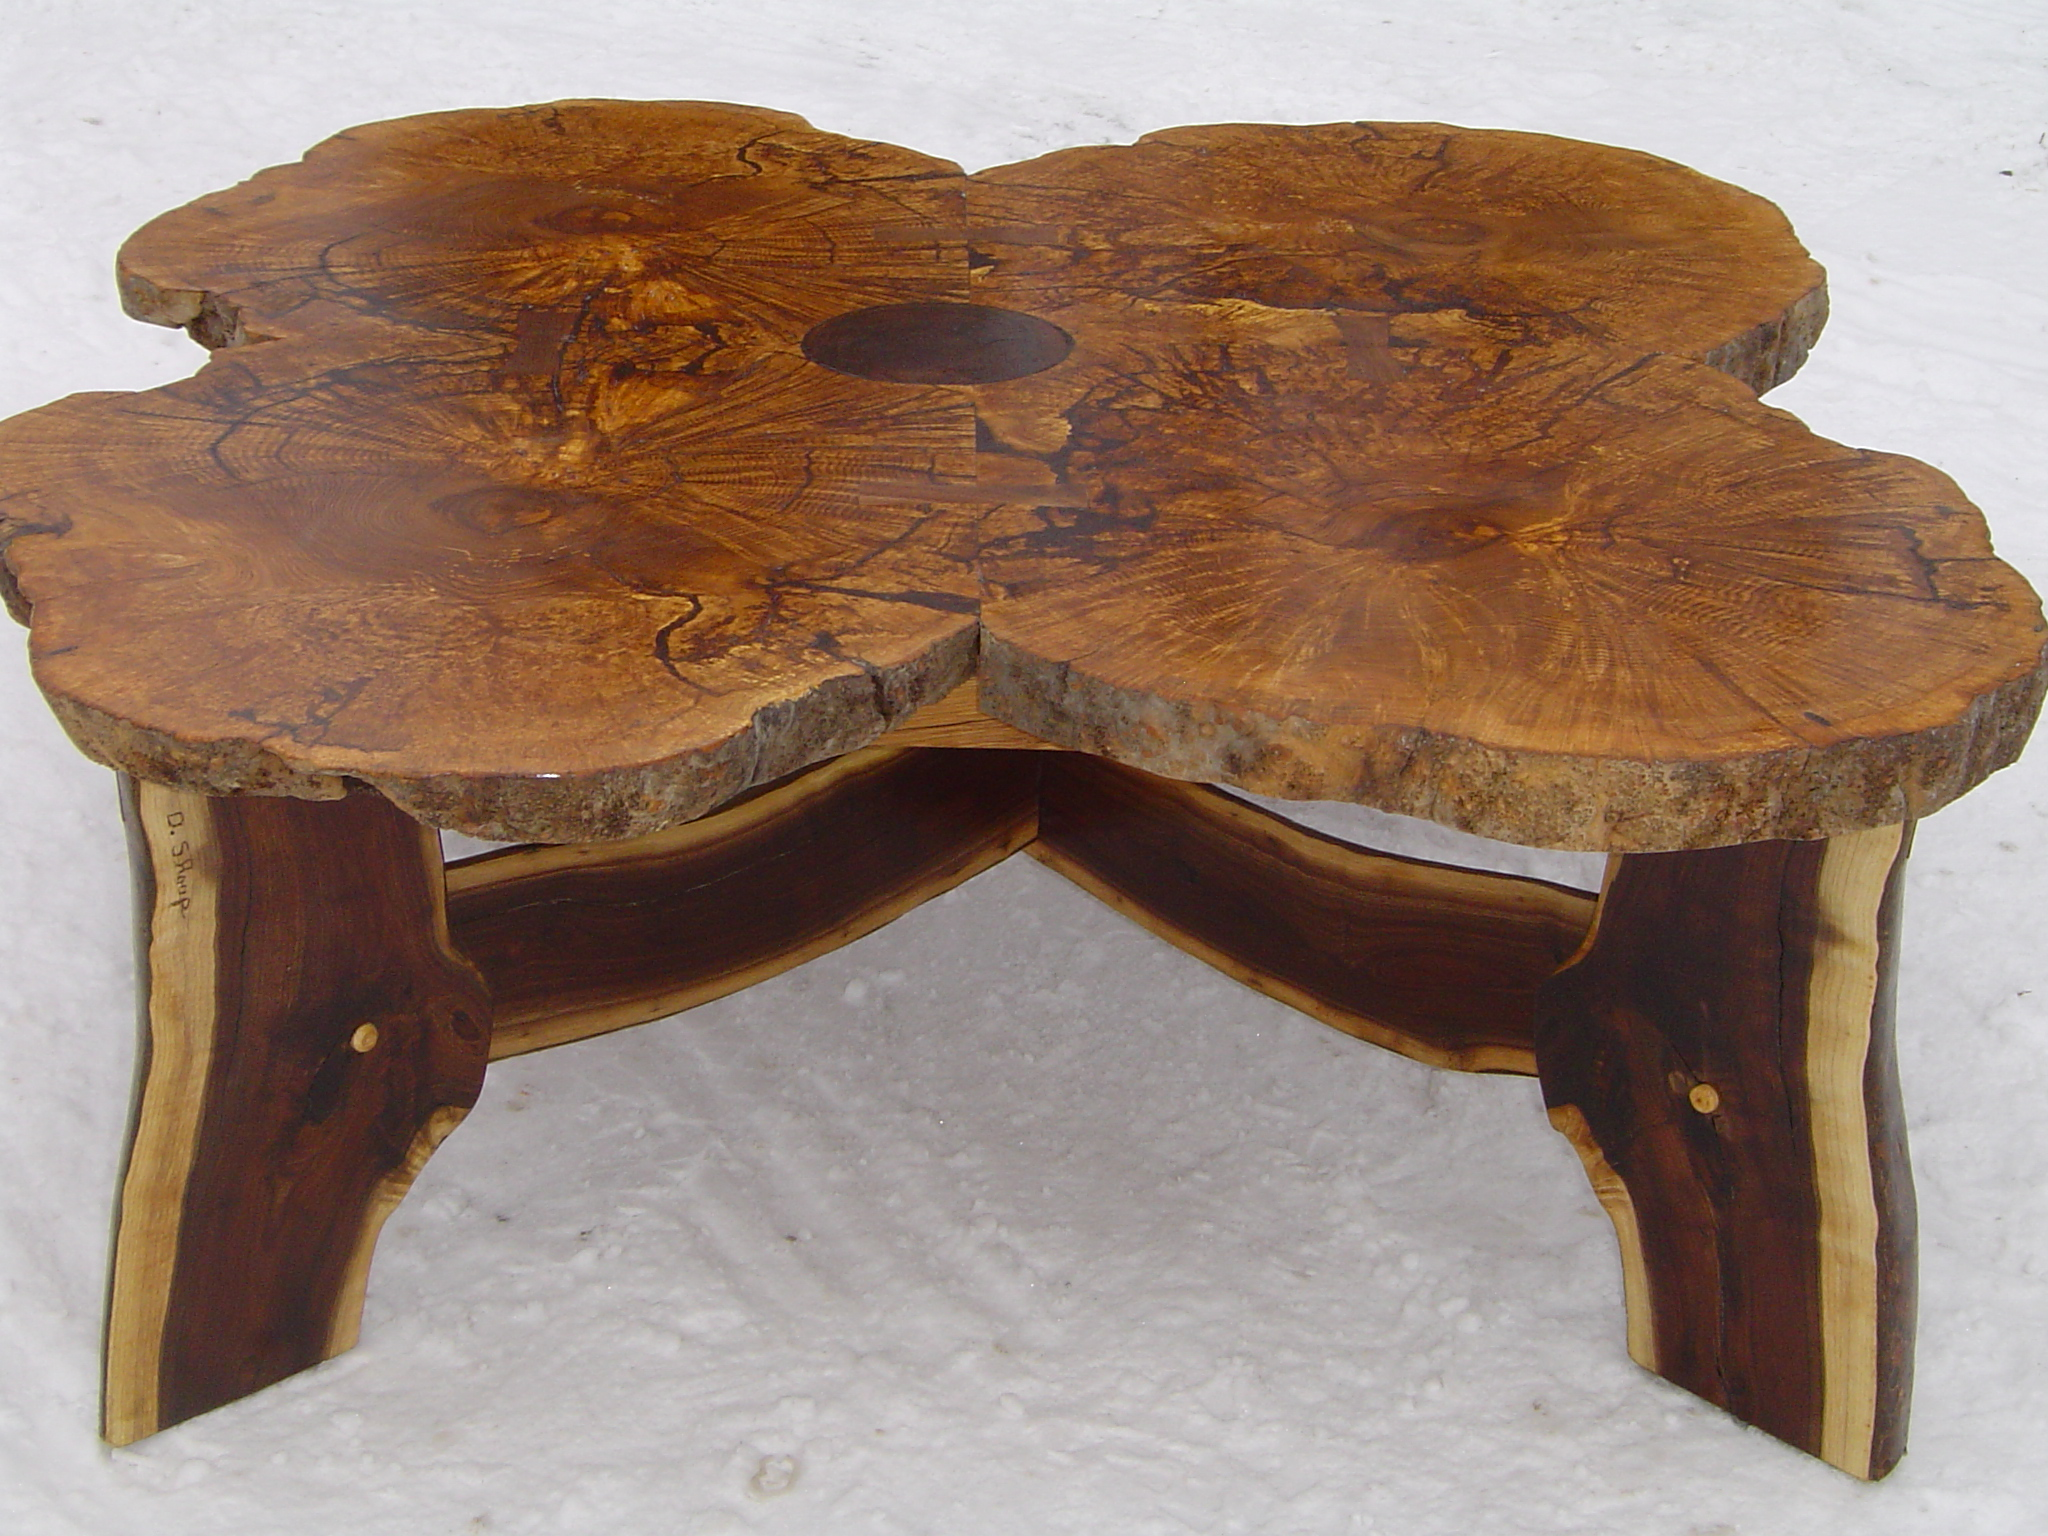 Rustic Ash Burl Table Duane Shoup Woodcraftsman